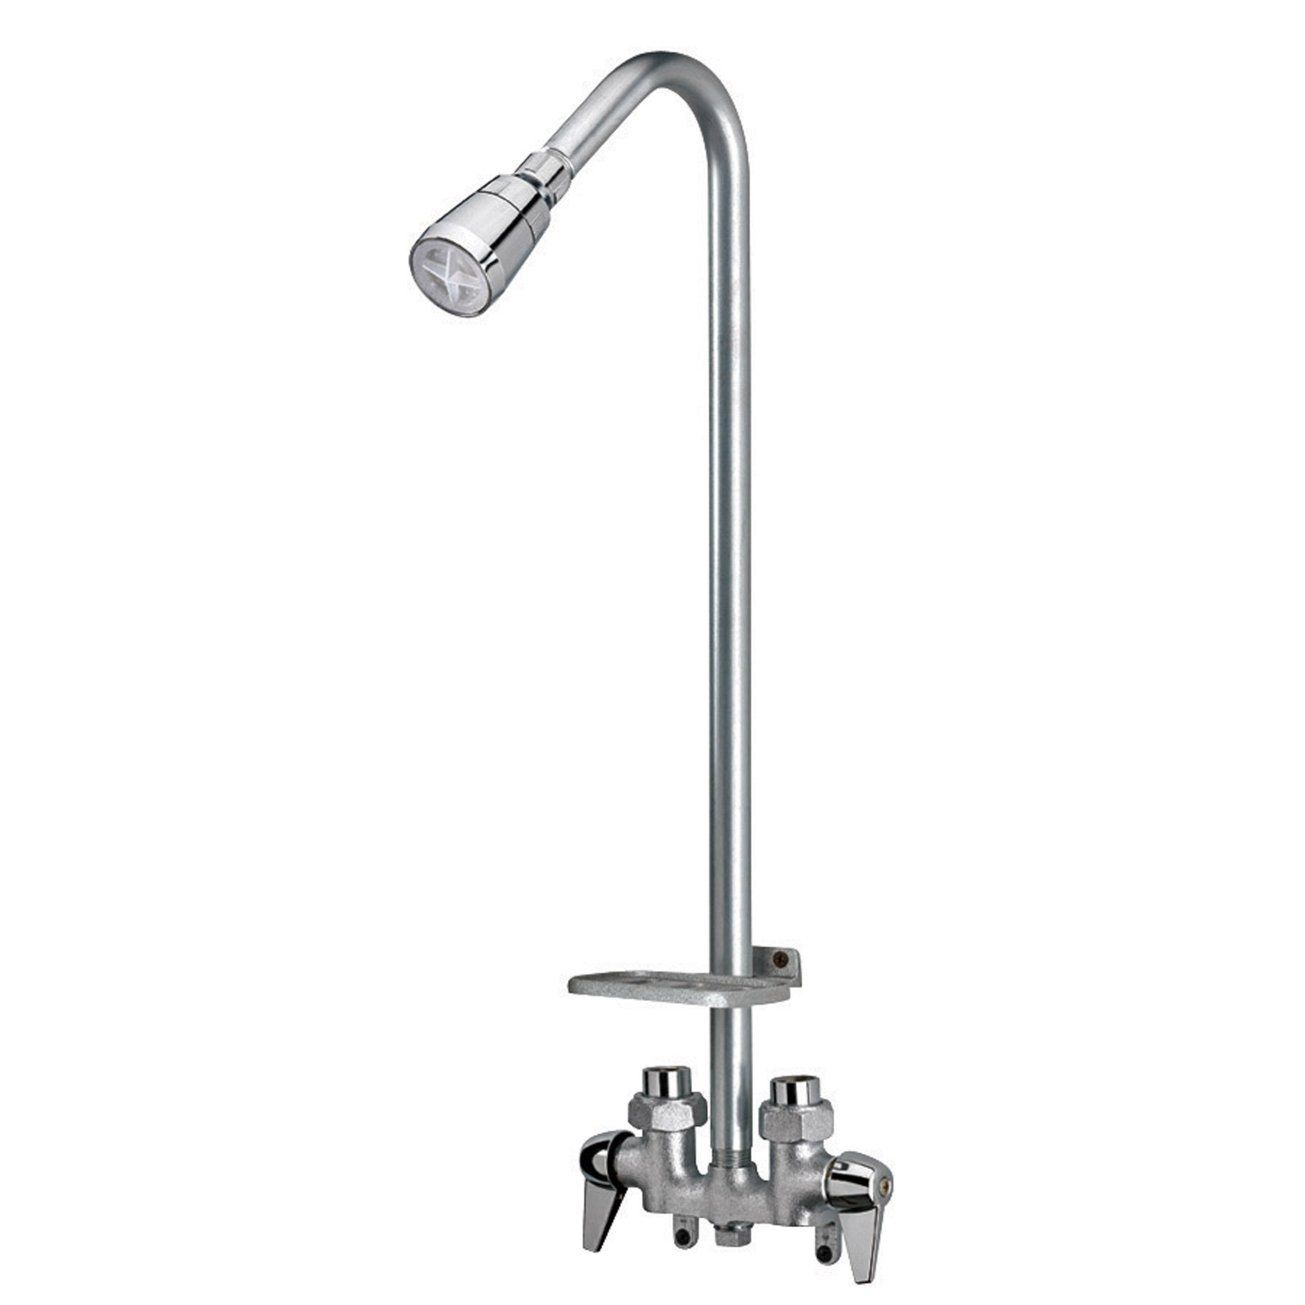 HOMEWERKS WORLDWIDE 3070-250-CH-B Base Utility Shower Faucet ...